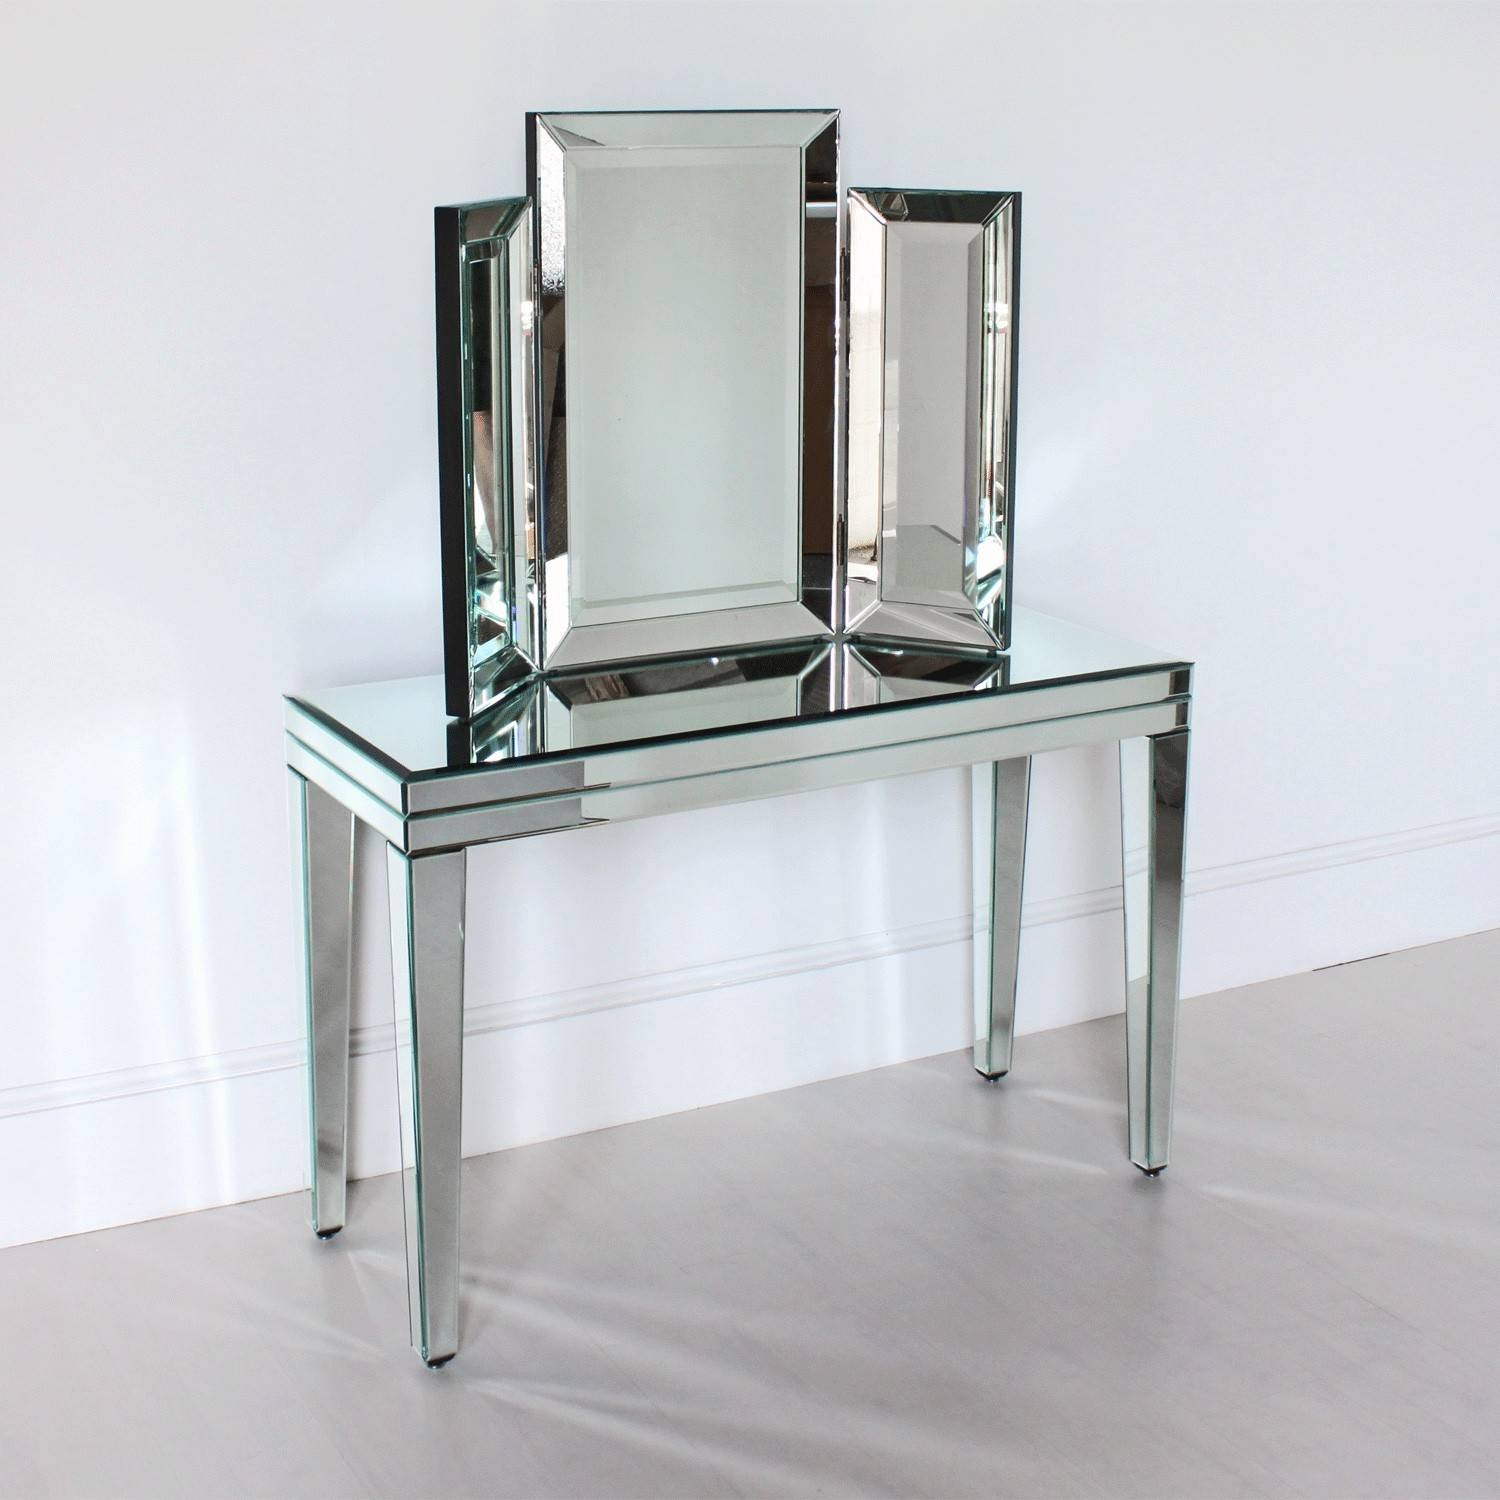 Venetian Three Fold Table Mirror intended for Venetian Table Mirrors (Image 25 of 25)